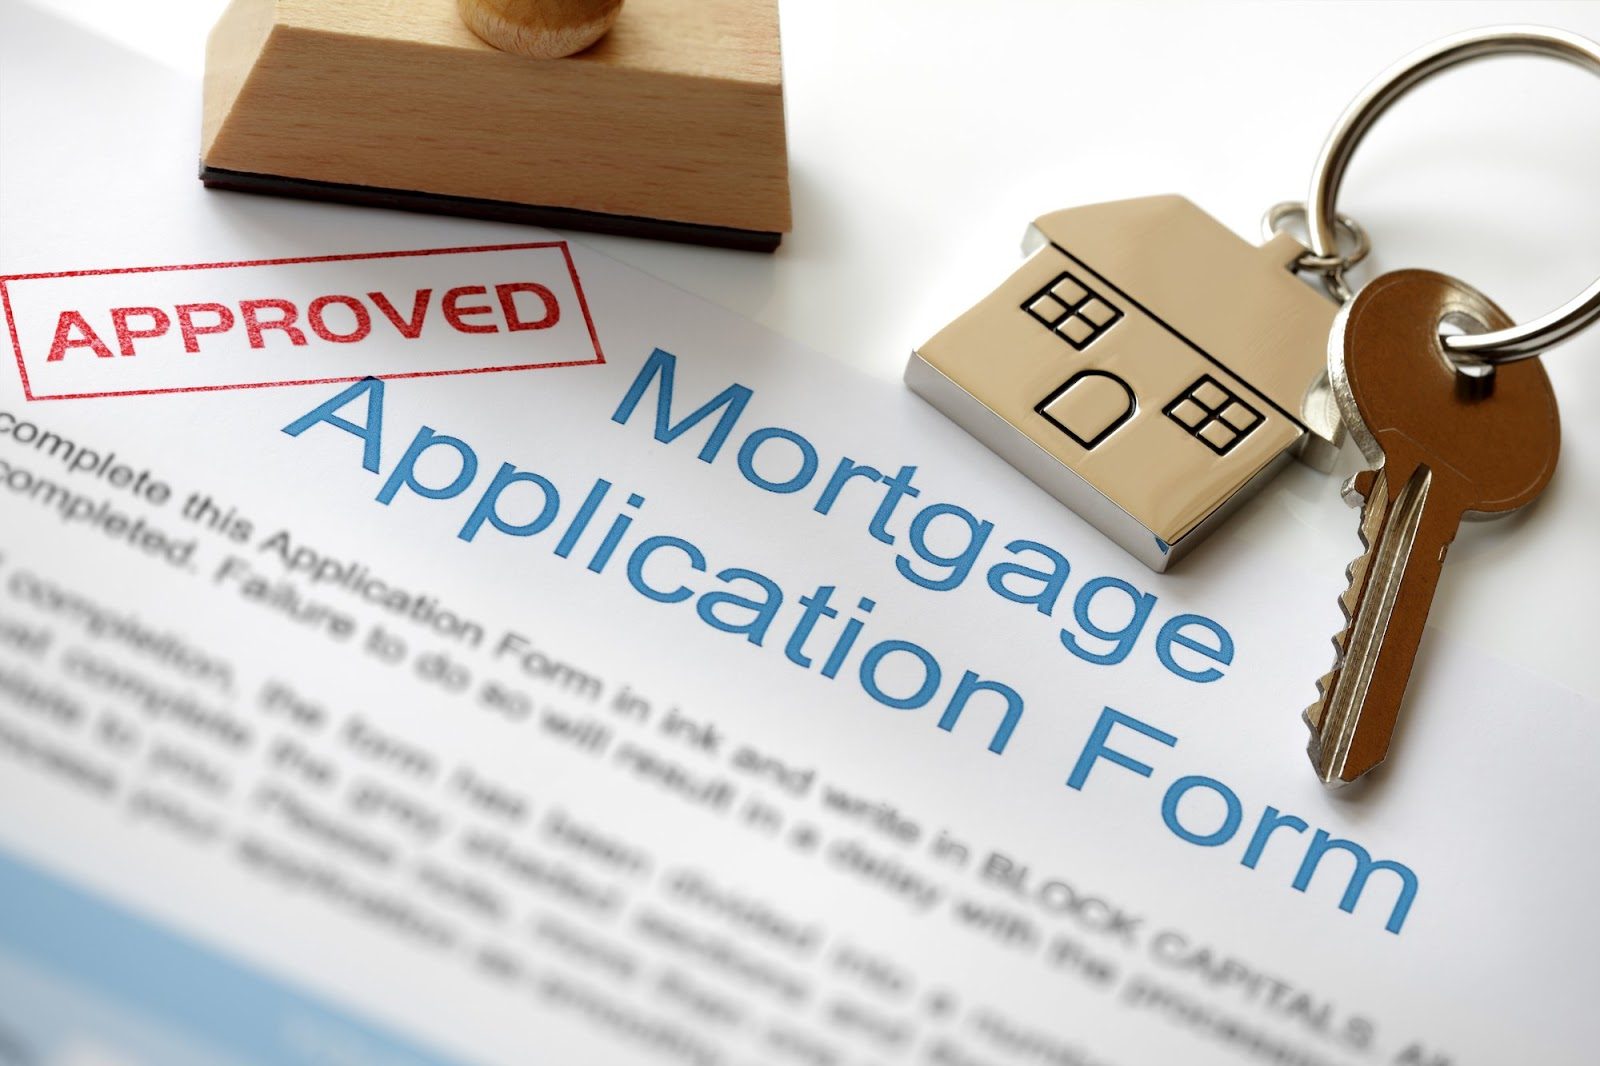 Approved mortgage application with keys on the paperwork